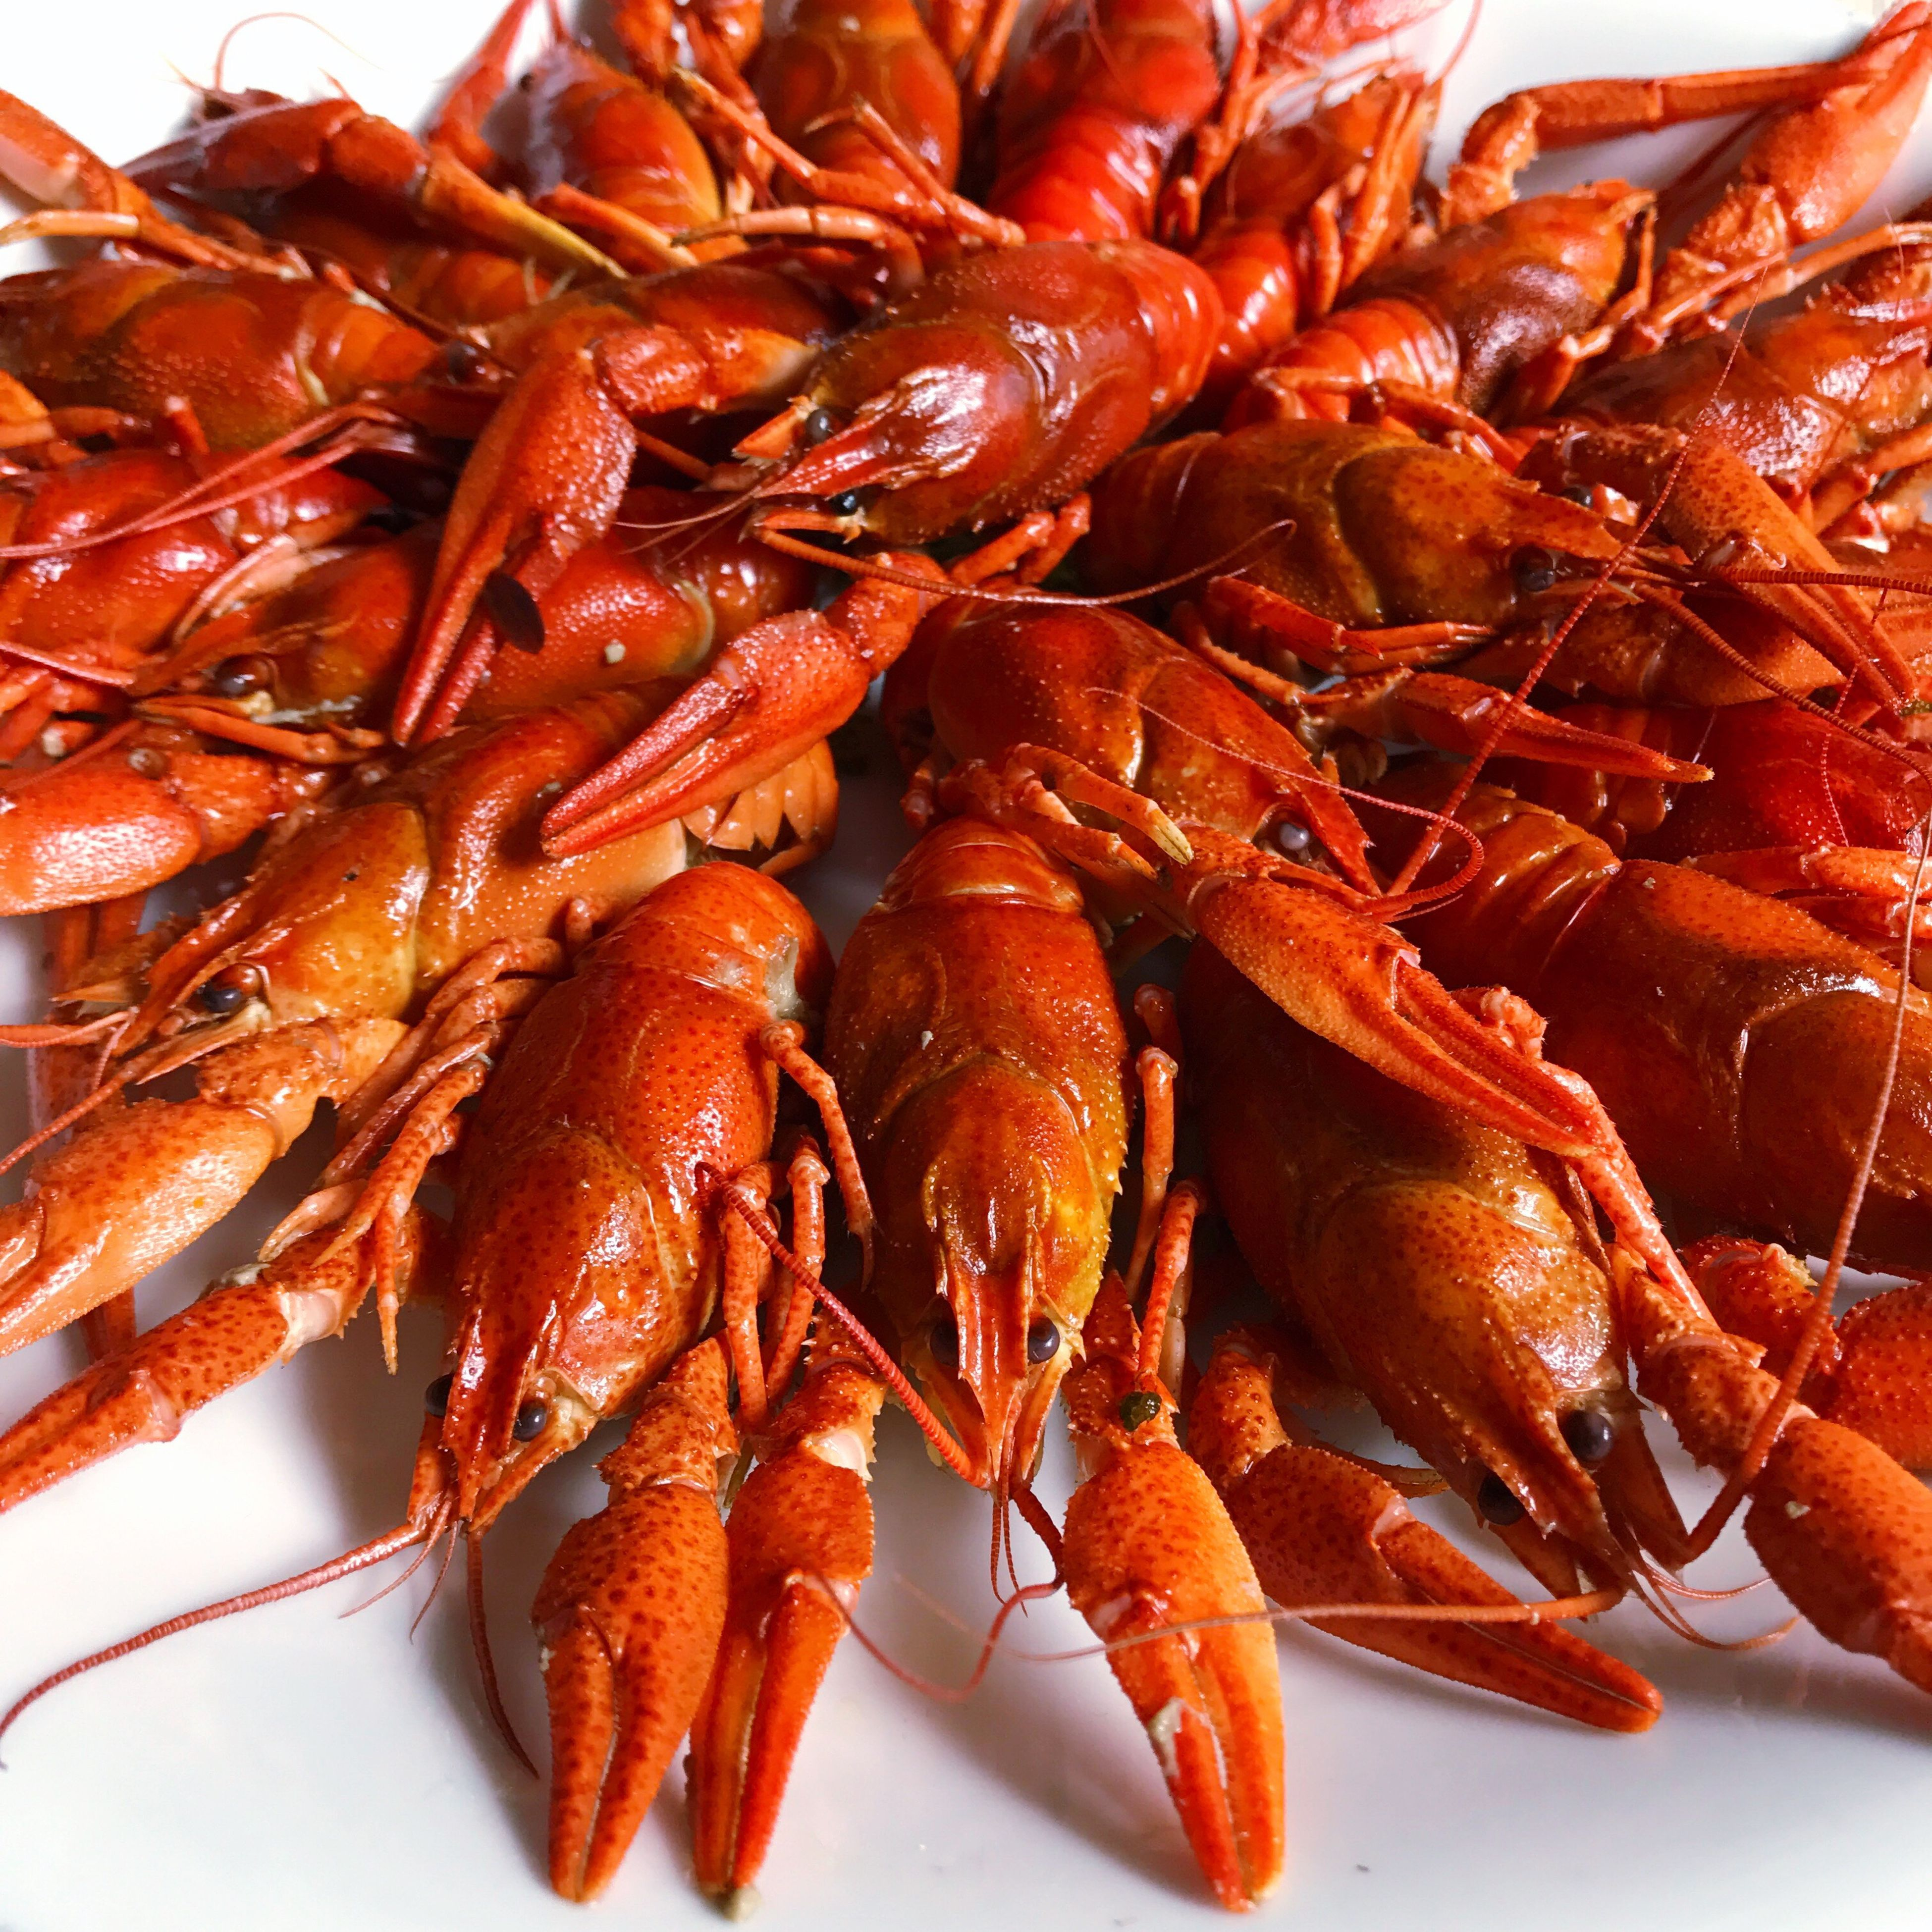 seafood, food, lobster, food and drink, freshness, prawn, orange color, crustacean, no people, healthy eating, shrimp, close-up, cooked, plate, boiled, indoors, ready-to-eat, animal themes, day